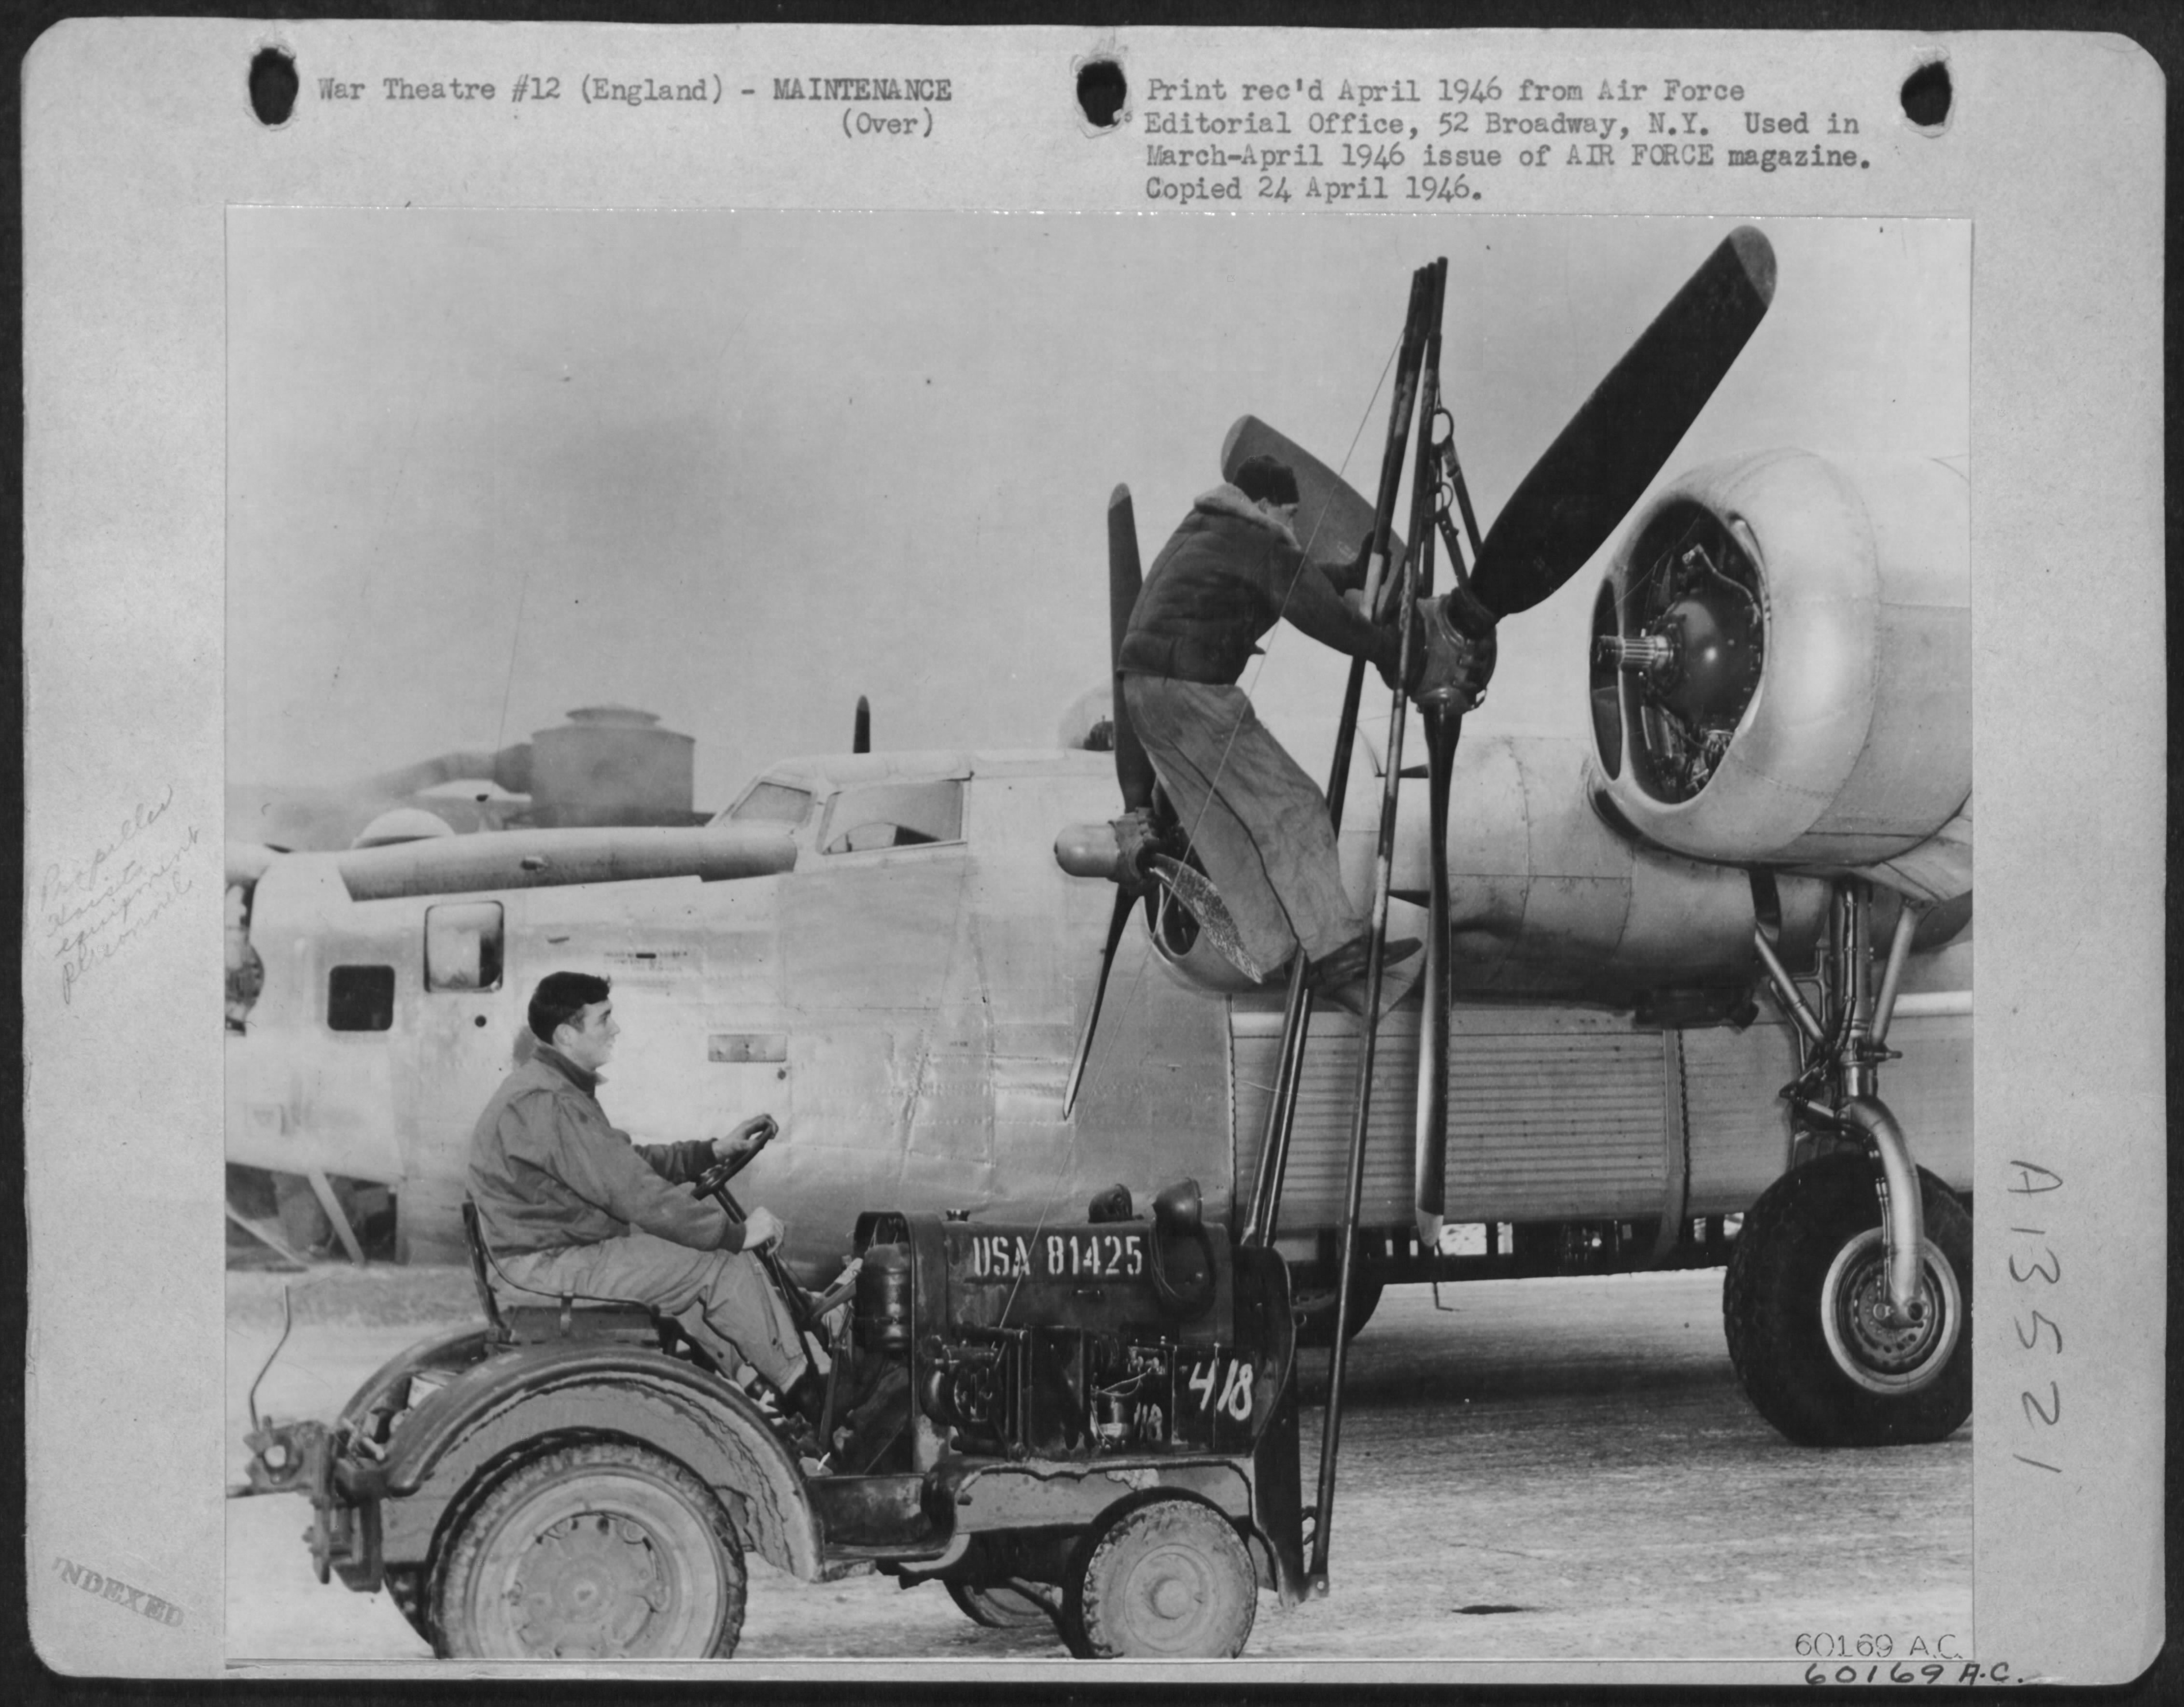 Fold3_Page_1_Black_and_White_and_Color_Photographs_of_US_Air_Force_and_Predecessor_Agencies_Activities_Facilities_and_Personnel_World_War_II (2)